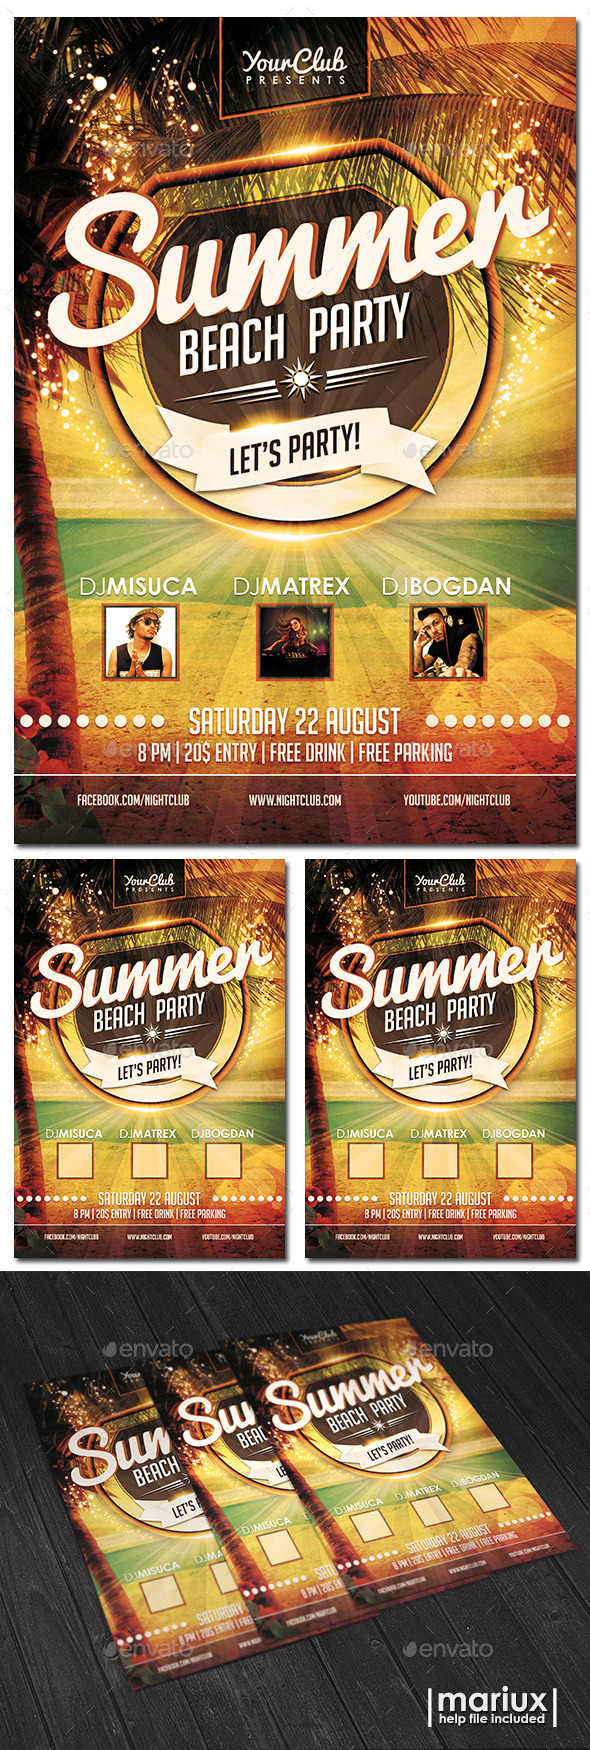 GraphicRiver Summer Beach Party Flyer 11156464